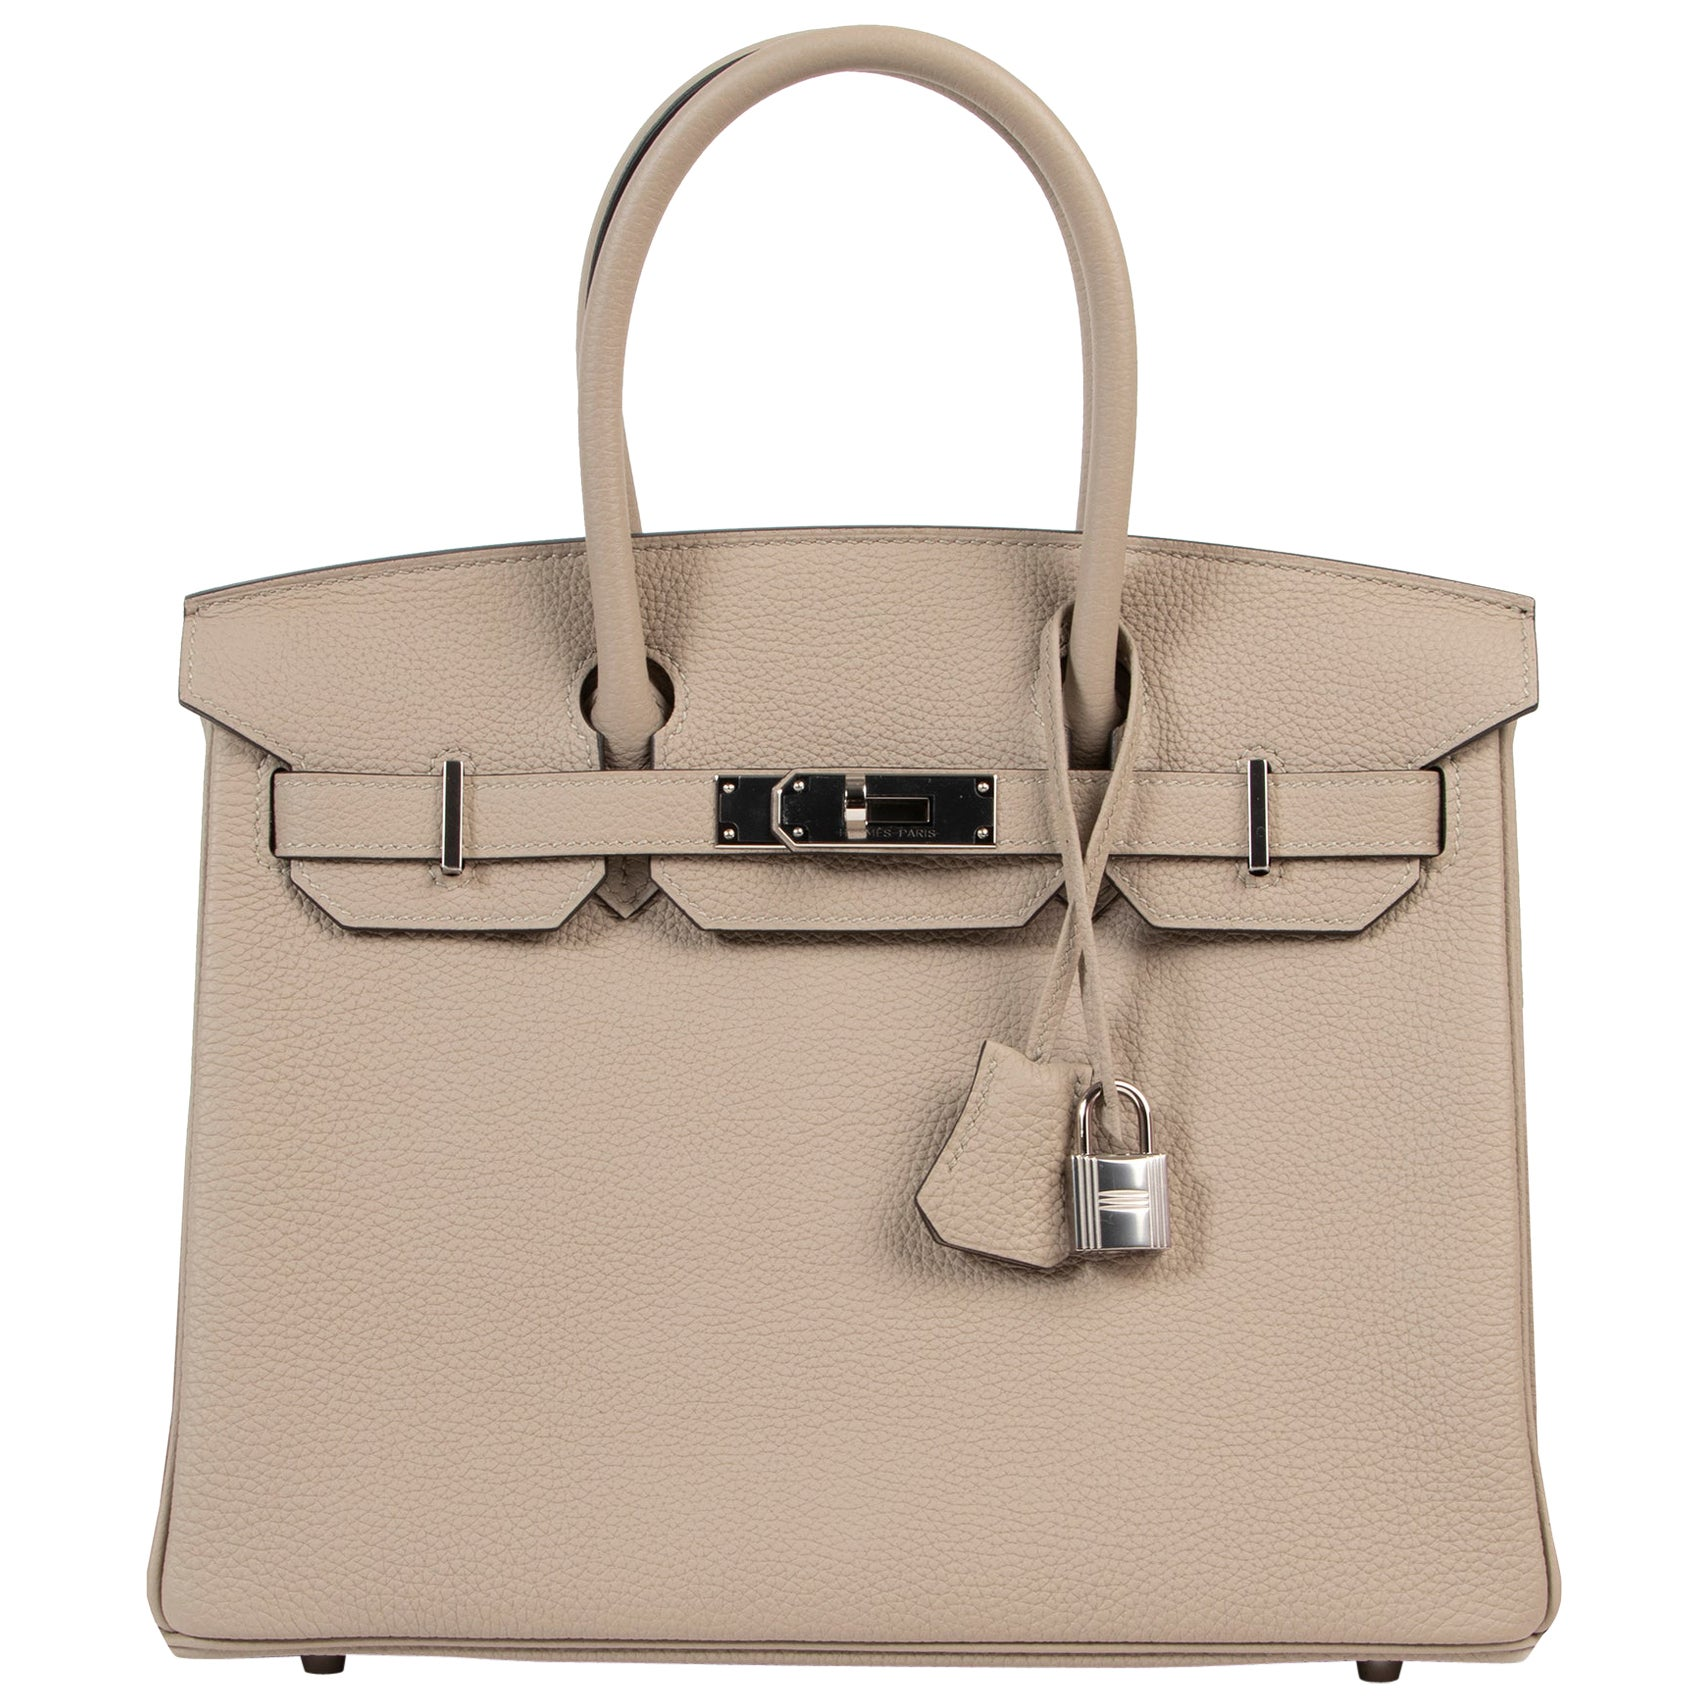 As New Hermes Birkin 30 Gris Tourterelle Togo PHW